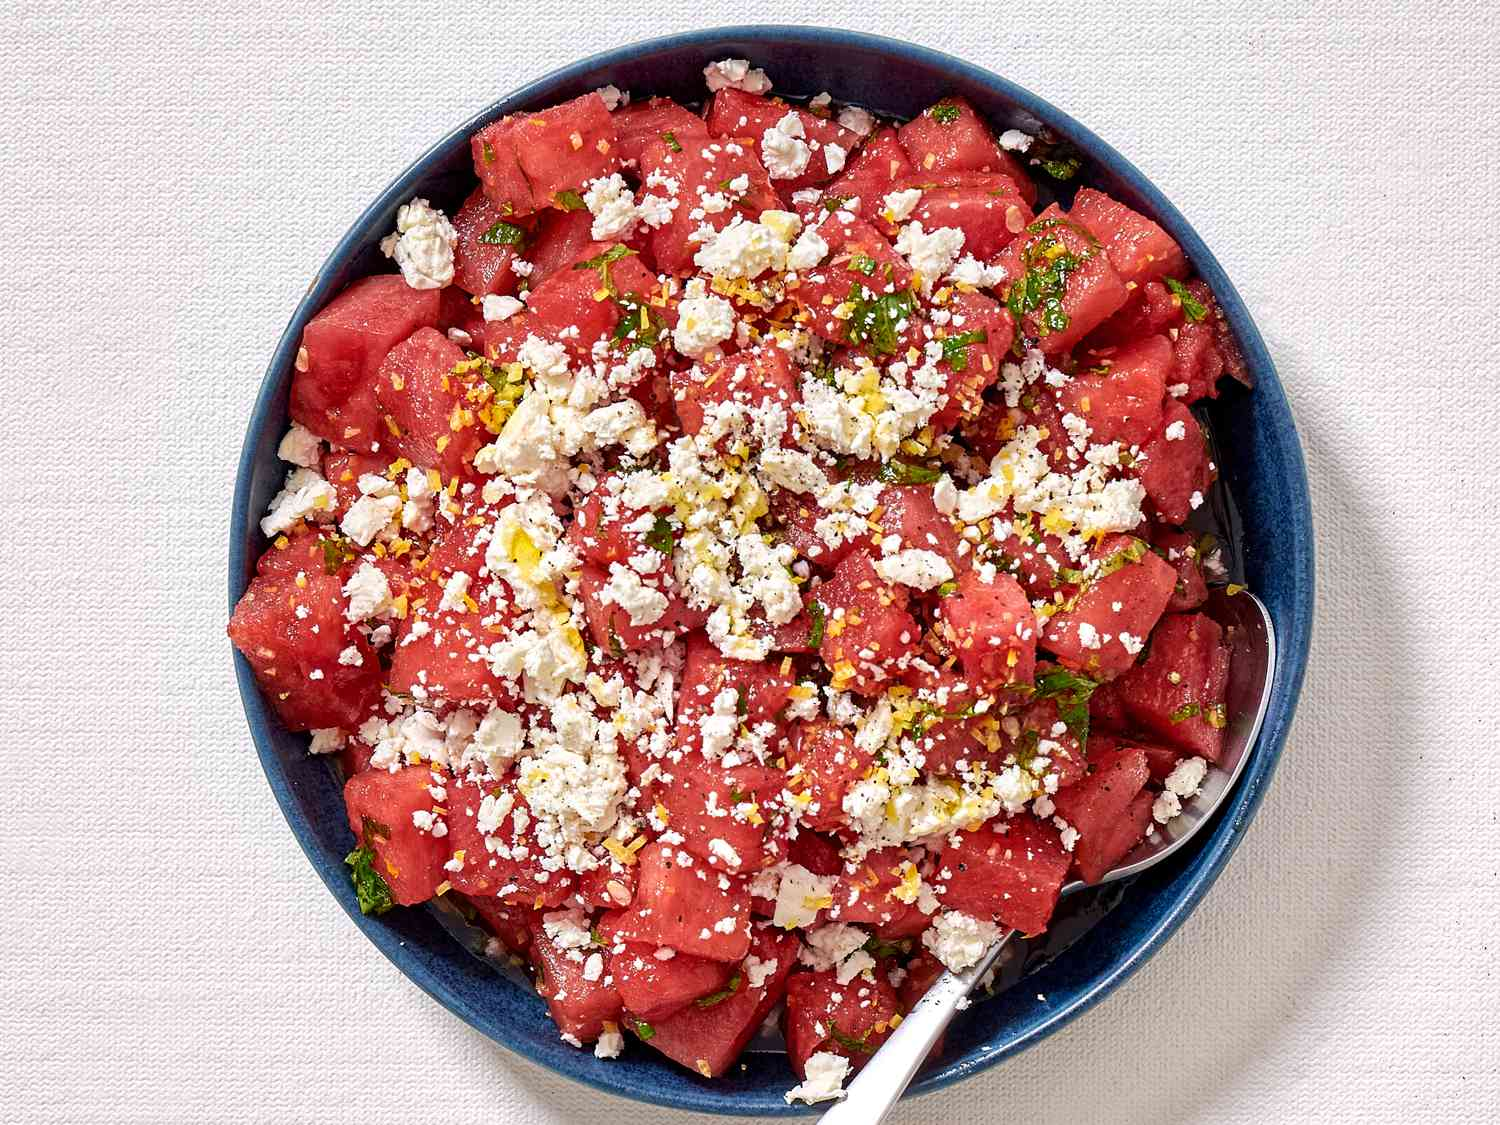 A watermelon salad with feta cheese, mint, and lemon zest in a large blue bowl.